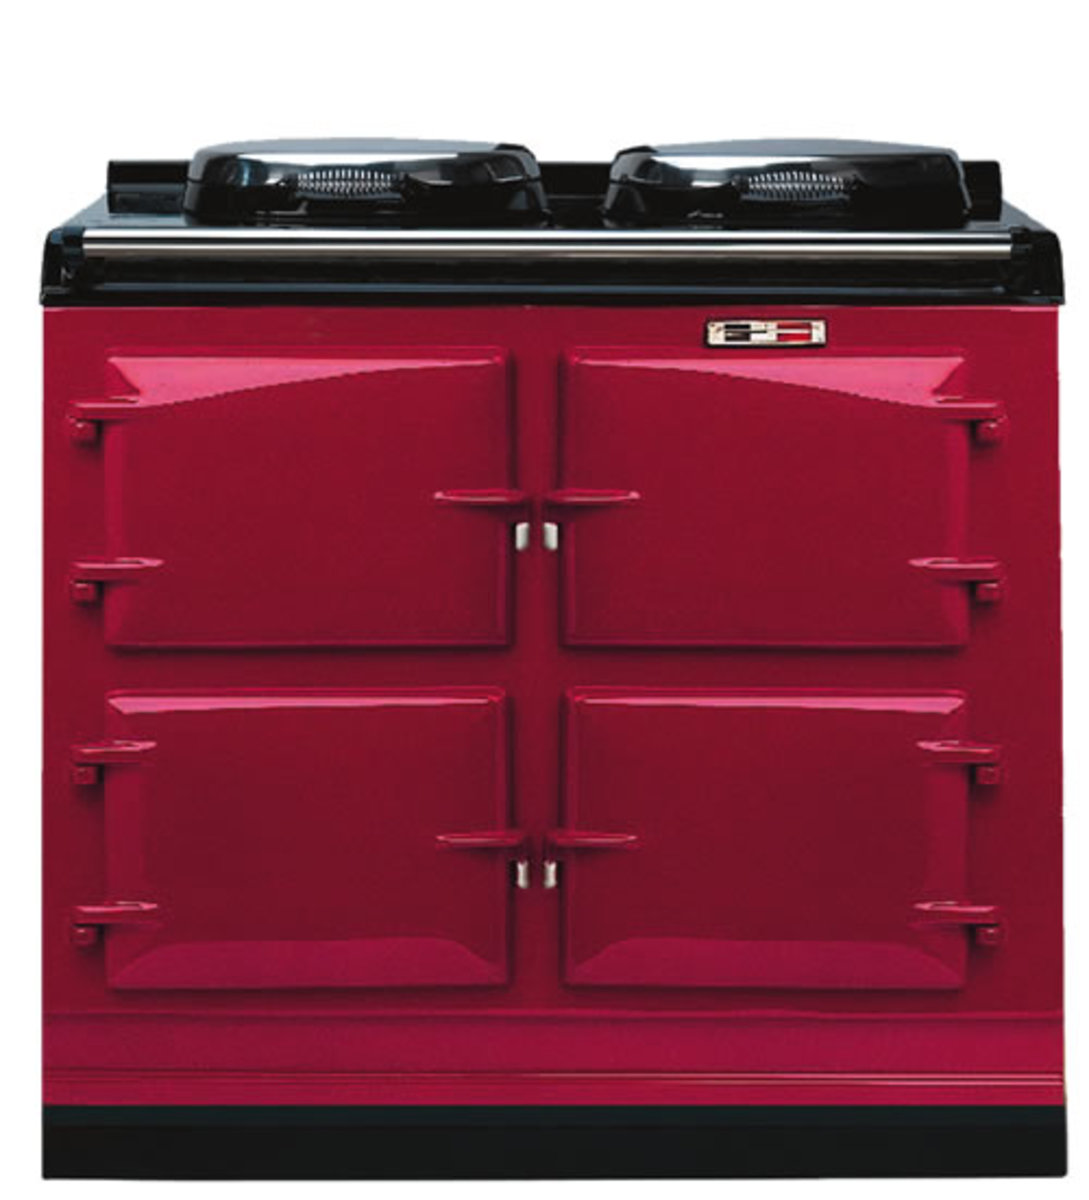 All About The Aga Range: A Kitchen Classic